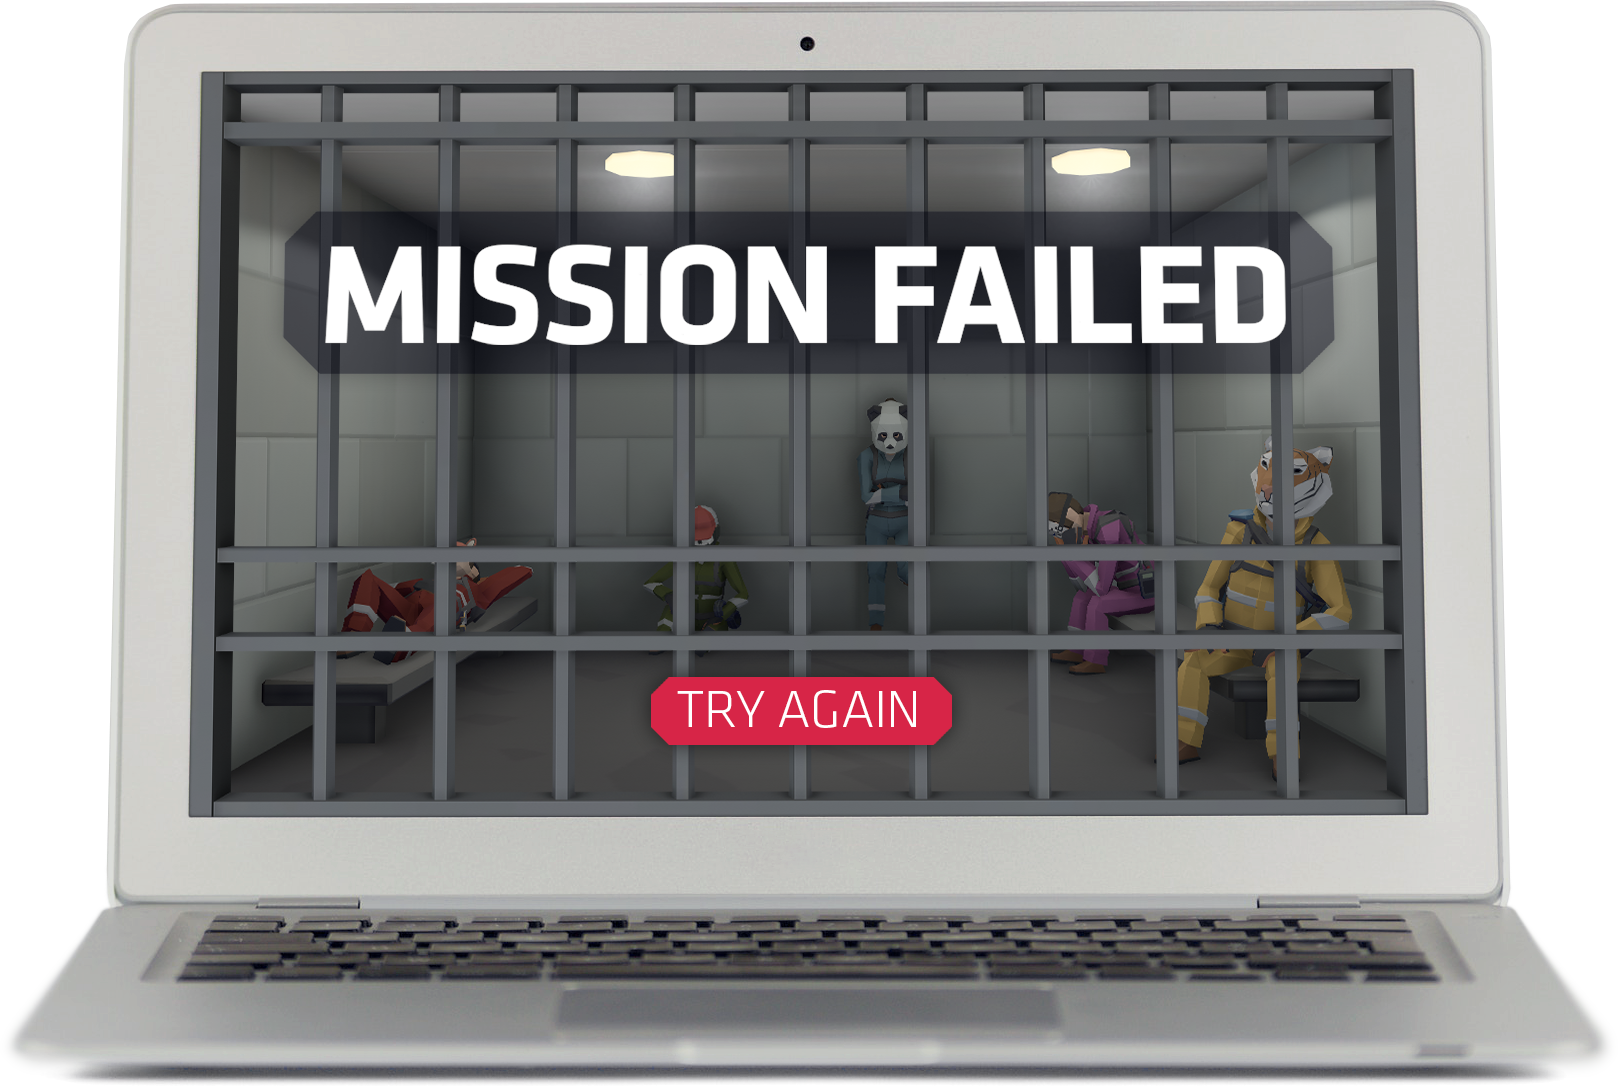 [Image: MISSION FAILED / Try Again]